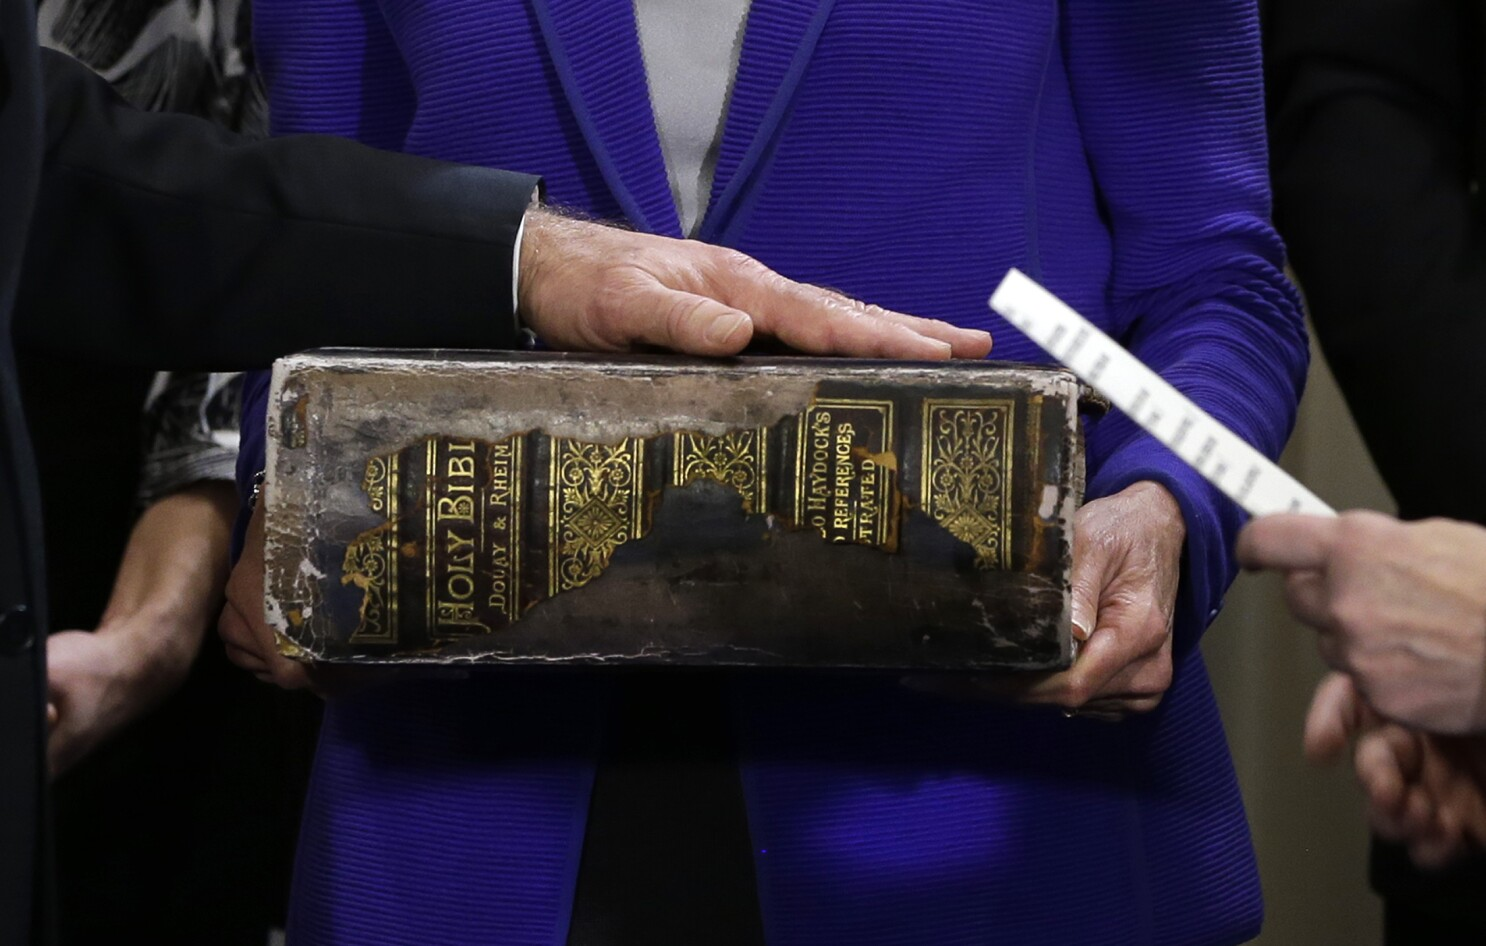 Inauguration Day: Biden to take oath on his family Bible - Los Angeles Times